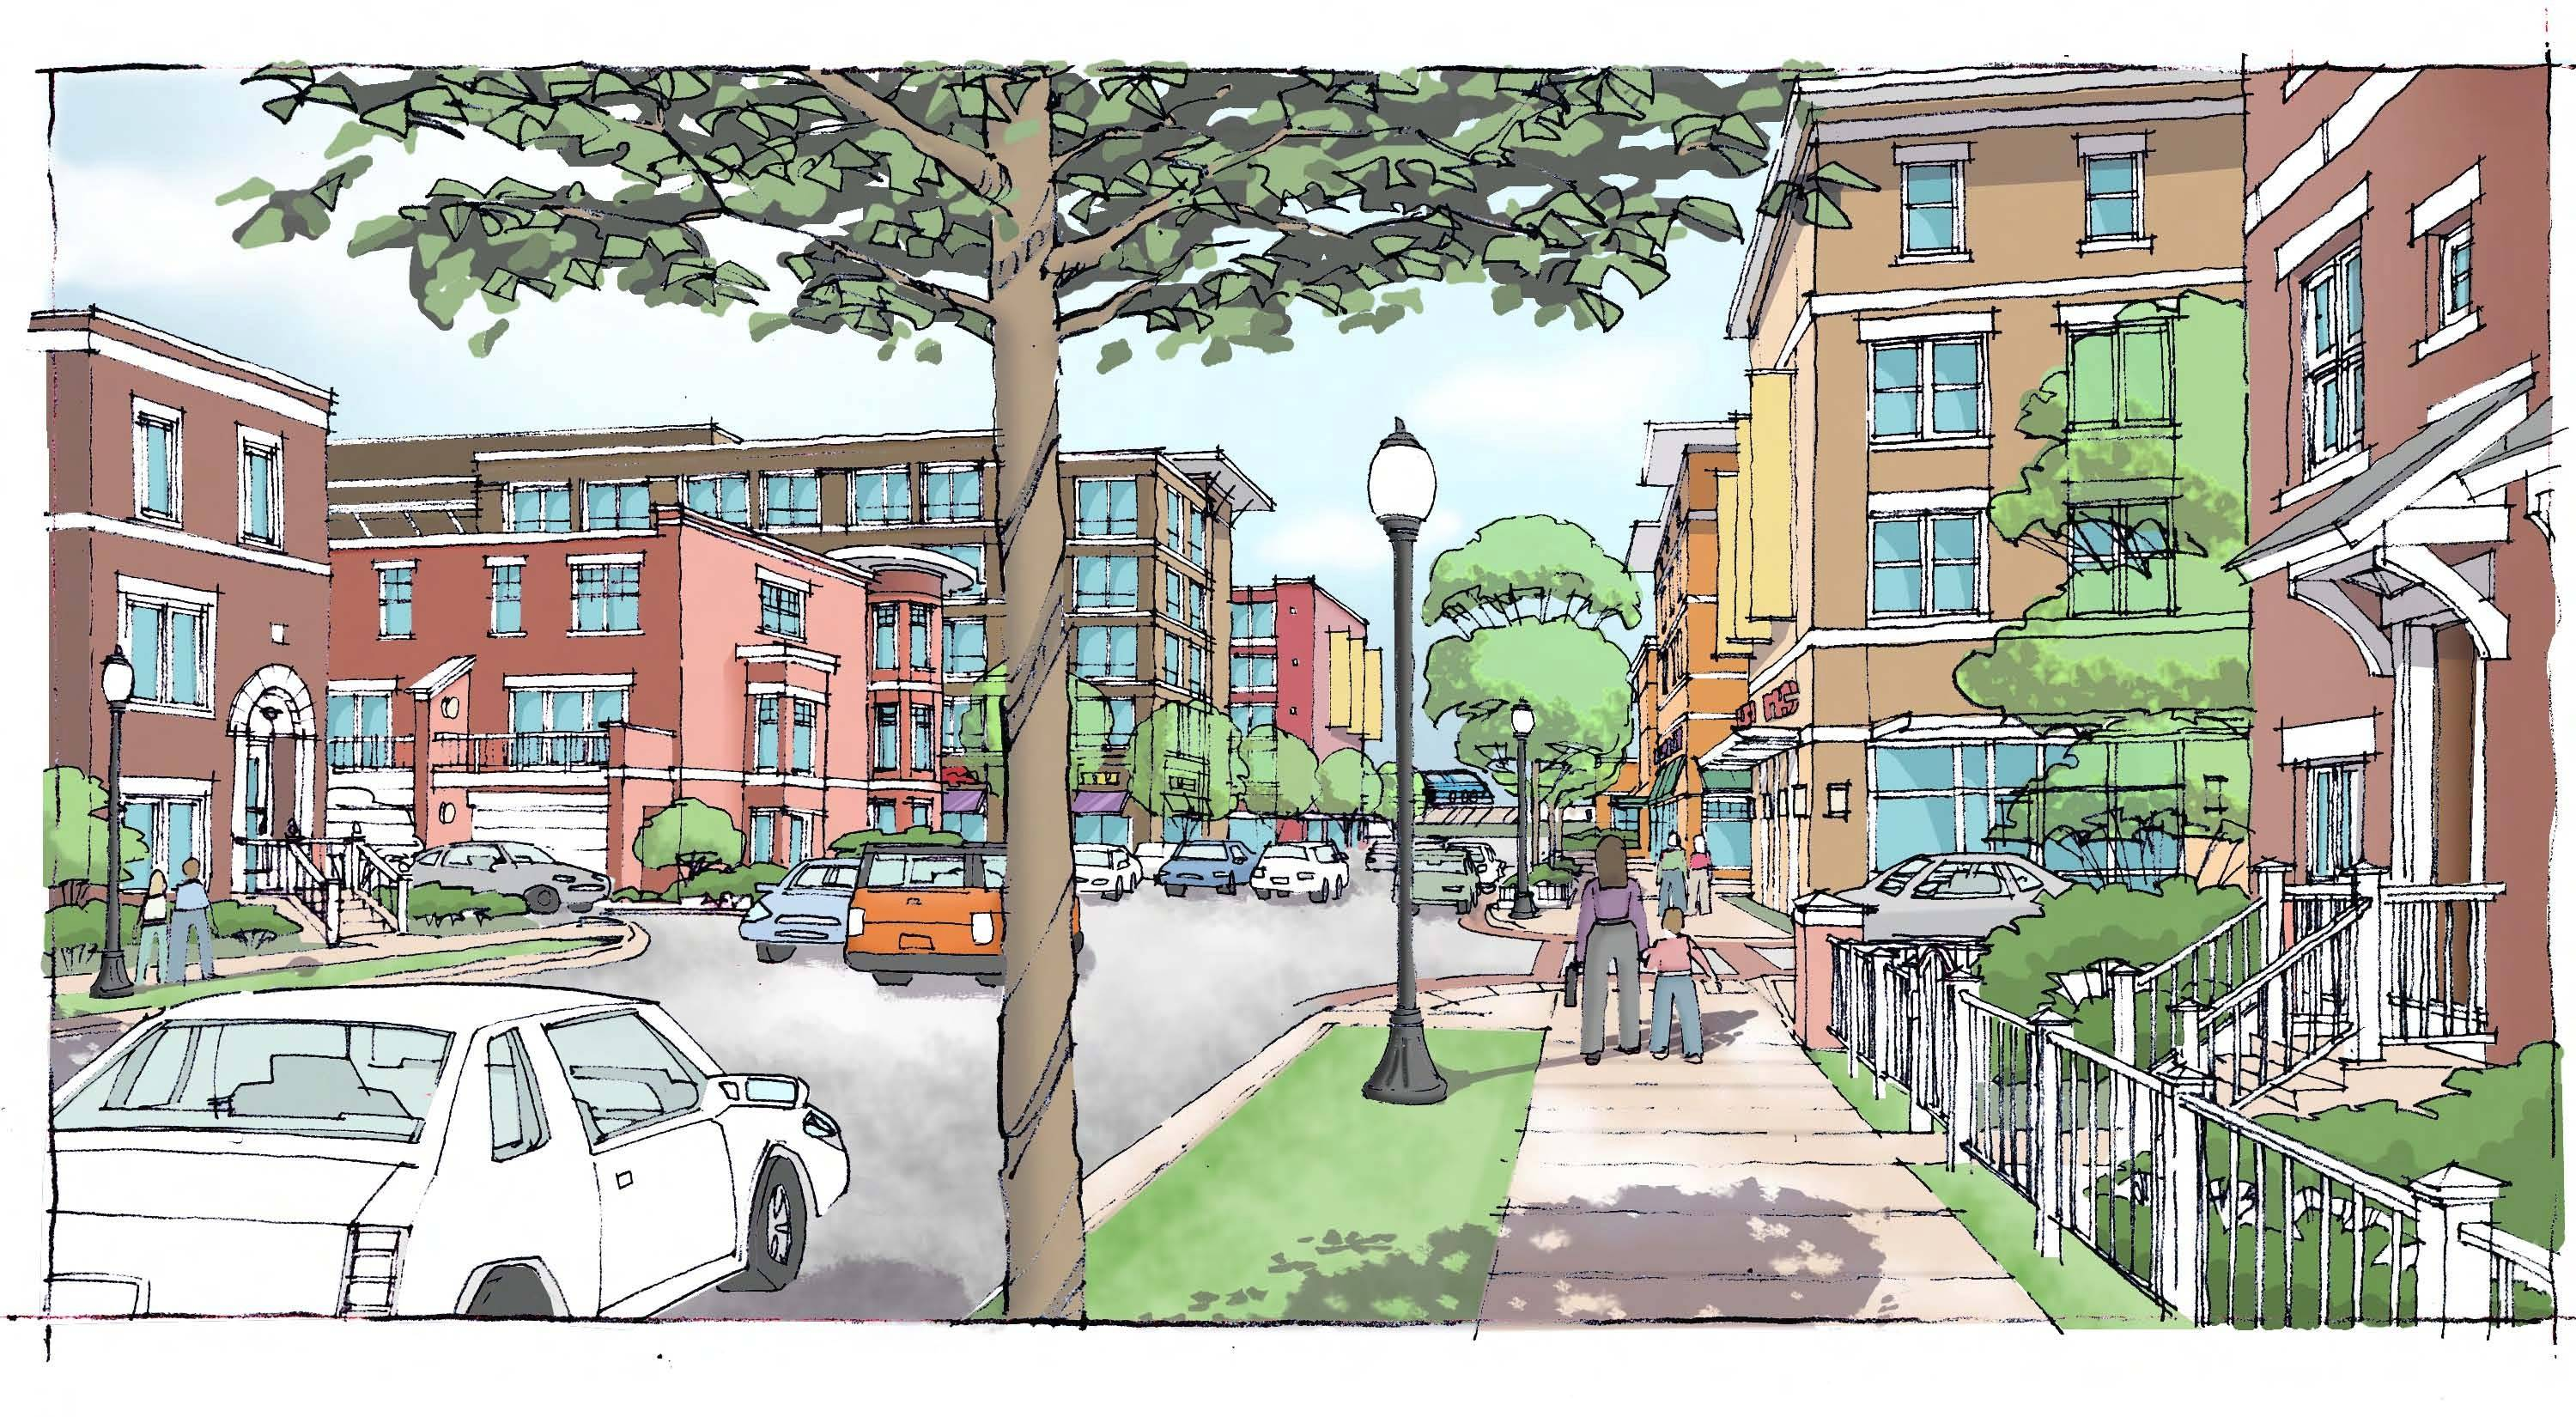 "According to the Hickory-Kensington Area Plan approved in 2012 by the village board, redevelopment would create ""a vibrant, mixed-use neighborhood which complements the downtown area, providing new housing and commercial opportunities in a walkable, pedestrian-friendly environment."""